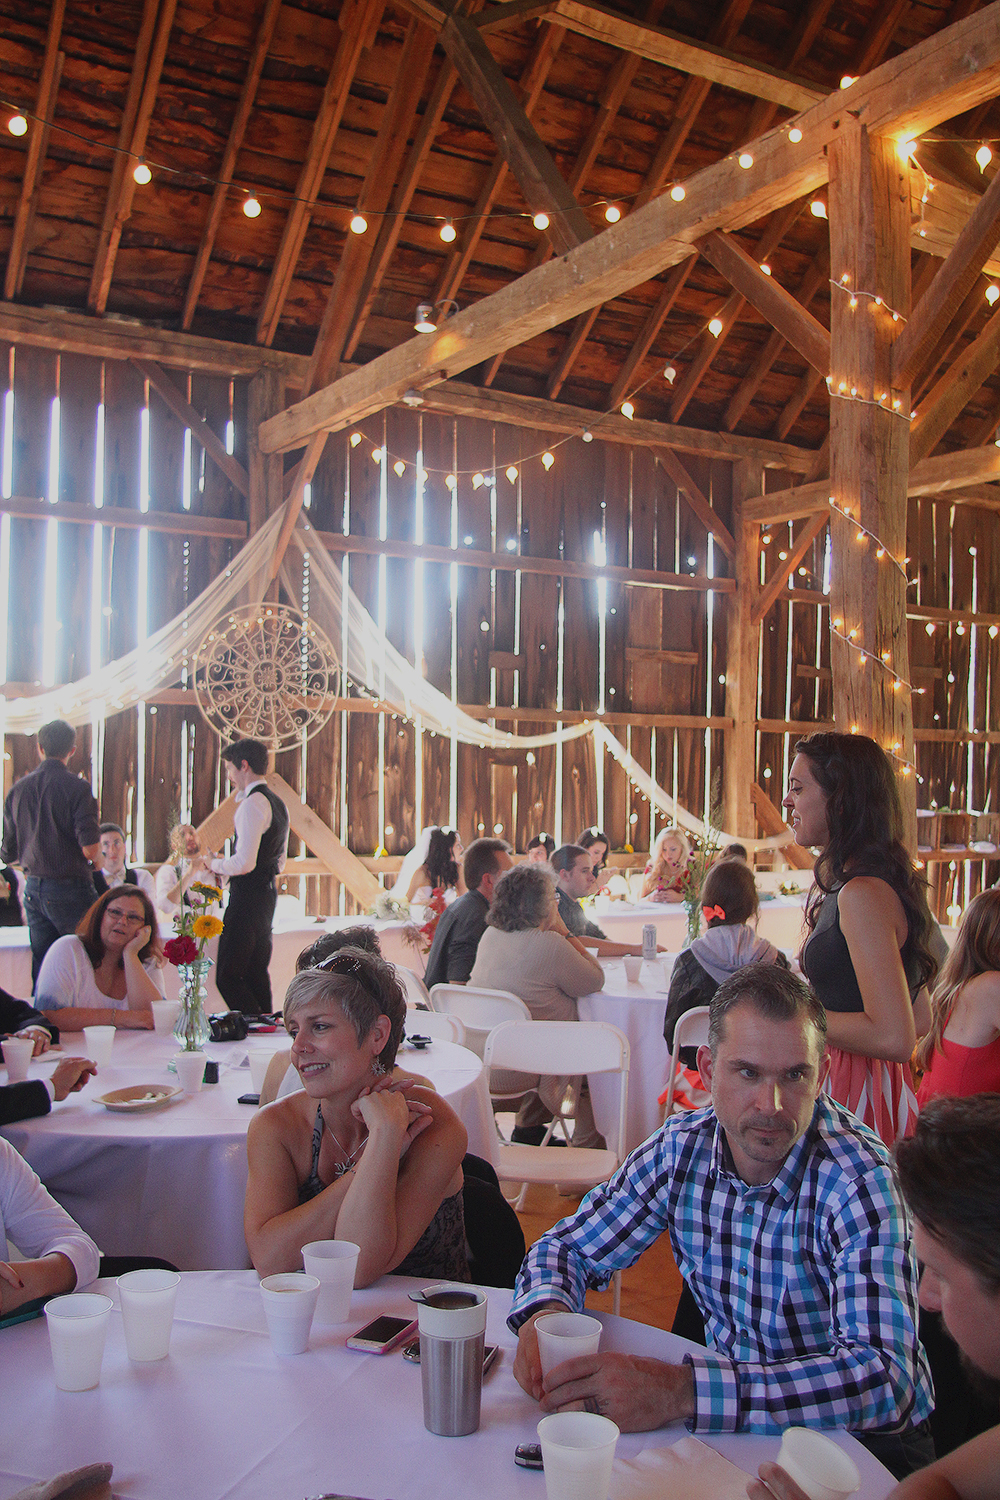 barn wedding Northern Michigan barn wedding Leelanau County barn wedding Leelanau County wedding Up North barn wedding